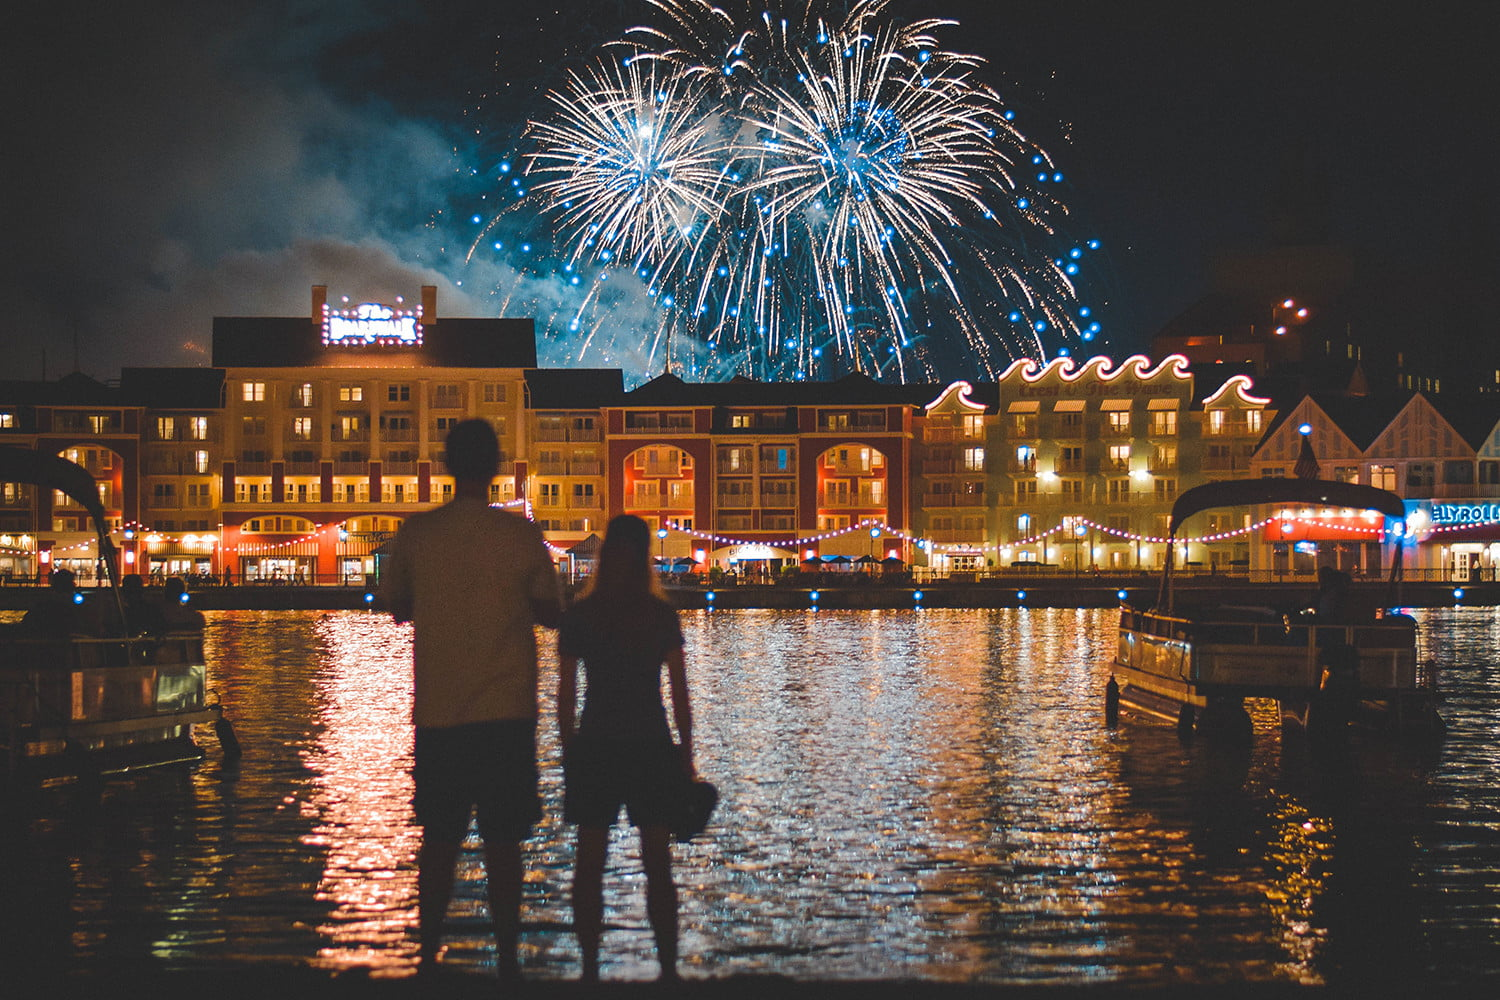 How to photograph fireworks and capture the color of Independence Day